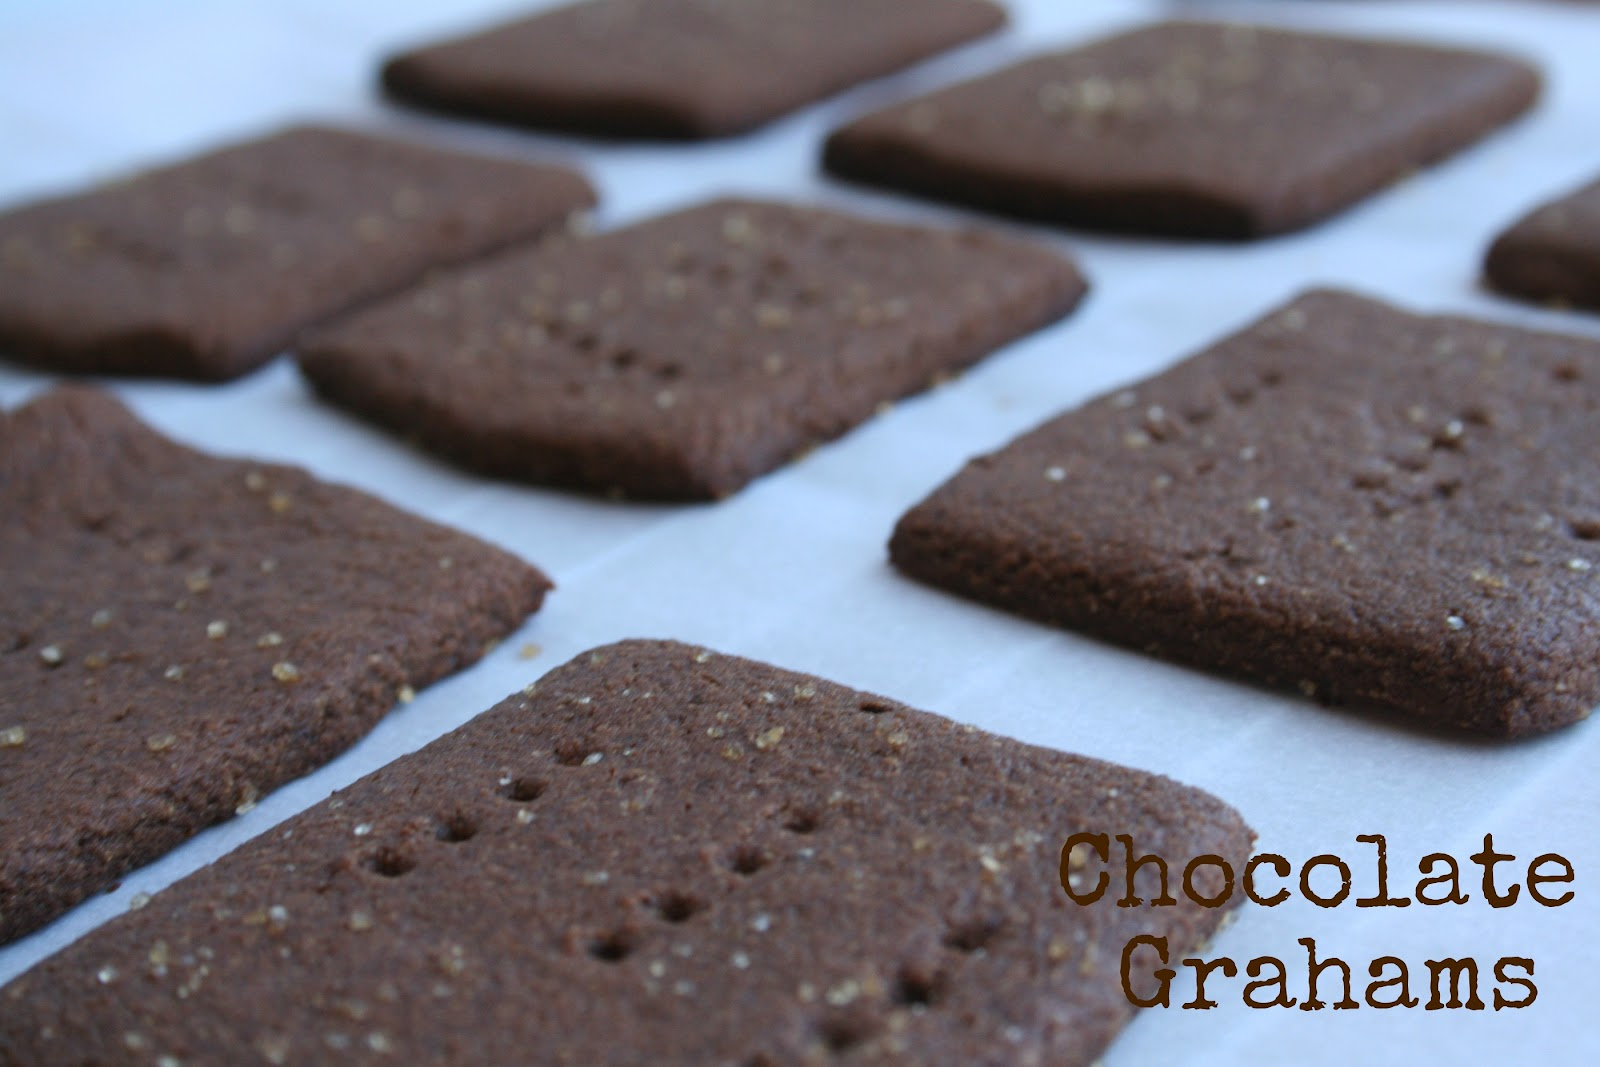 chocolate_graham_crackers.jpg